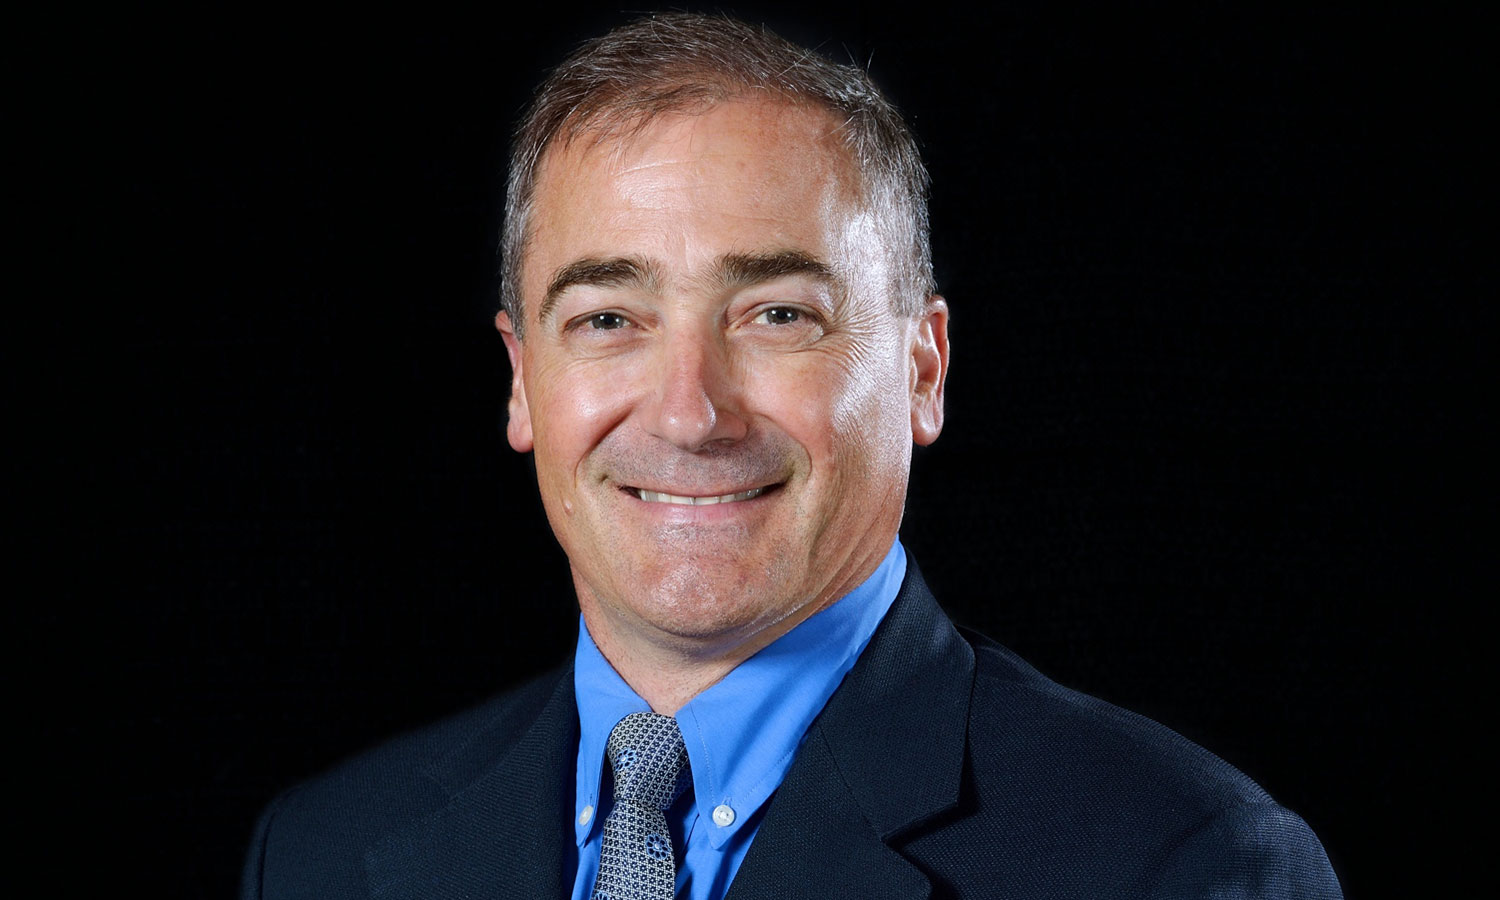 John Vanbiesbrouck Named Assistant Executive Director Of Hockey Operations? For USA Hockey